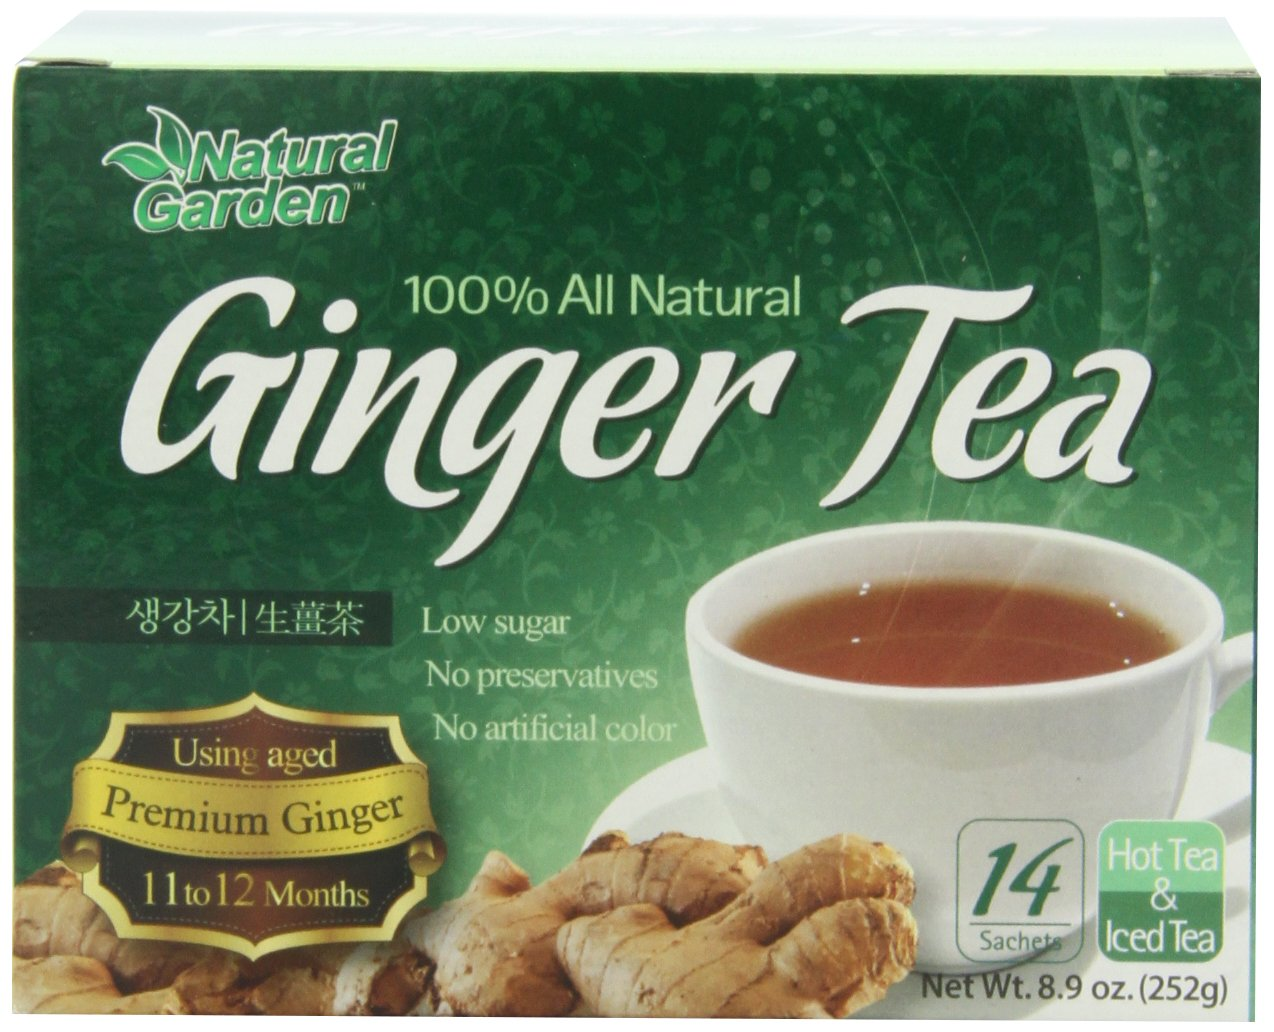 Natural Garden 100% All Natural Ginger Tea, 14 Tea Sachets (Pack of 6)